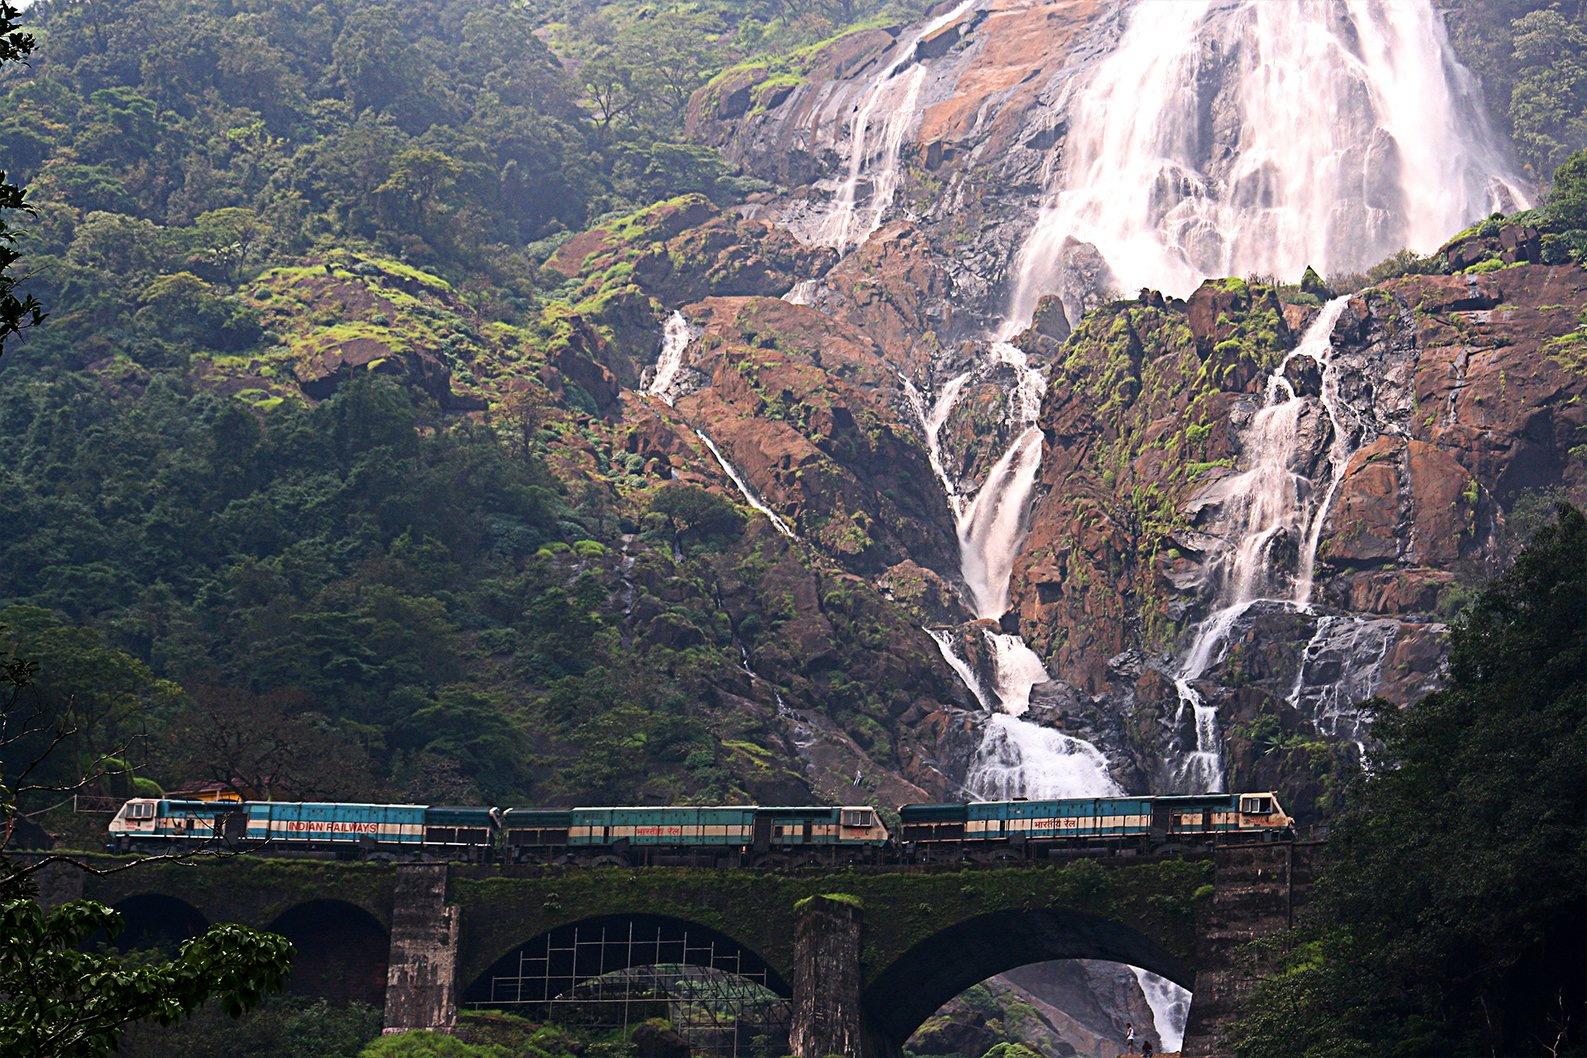 train crossing Dudhsagar waterfalls, the second highest in India on the way to Londa